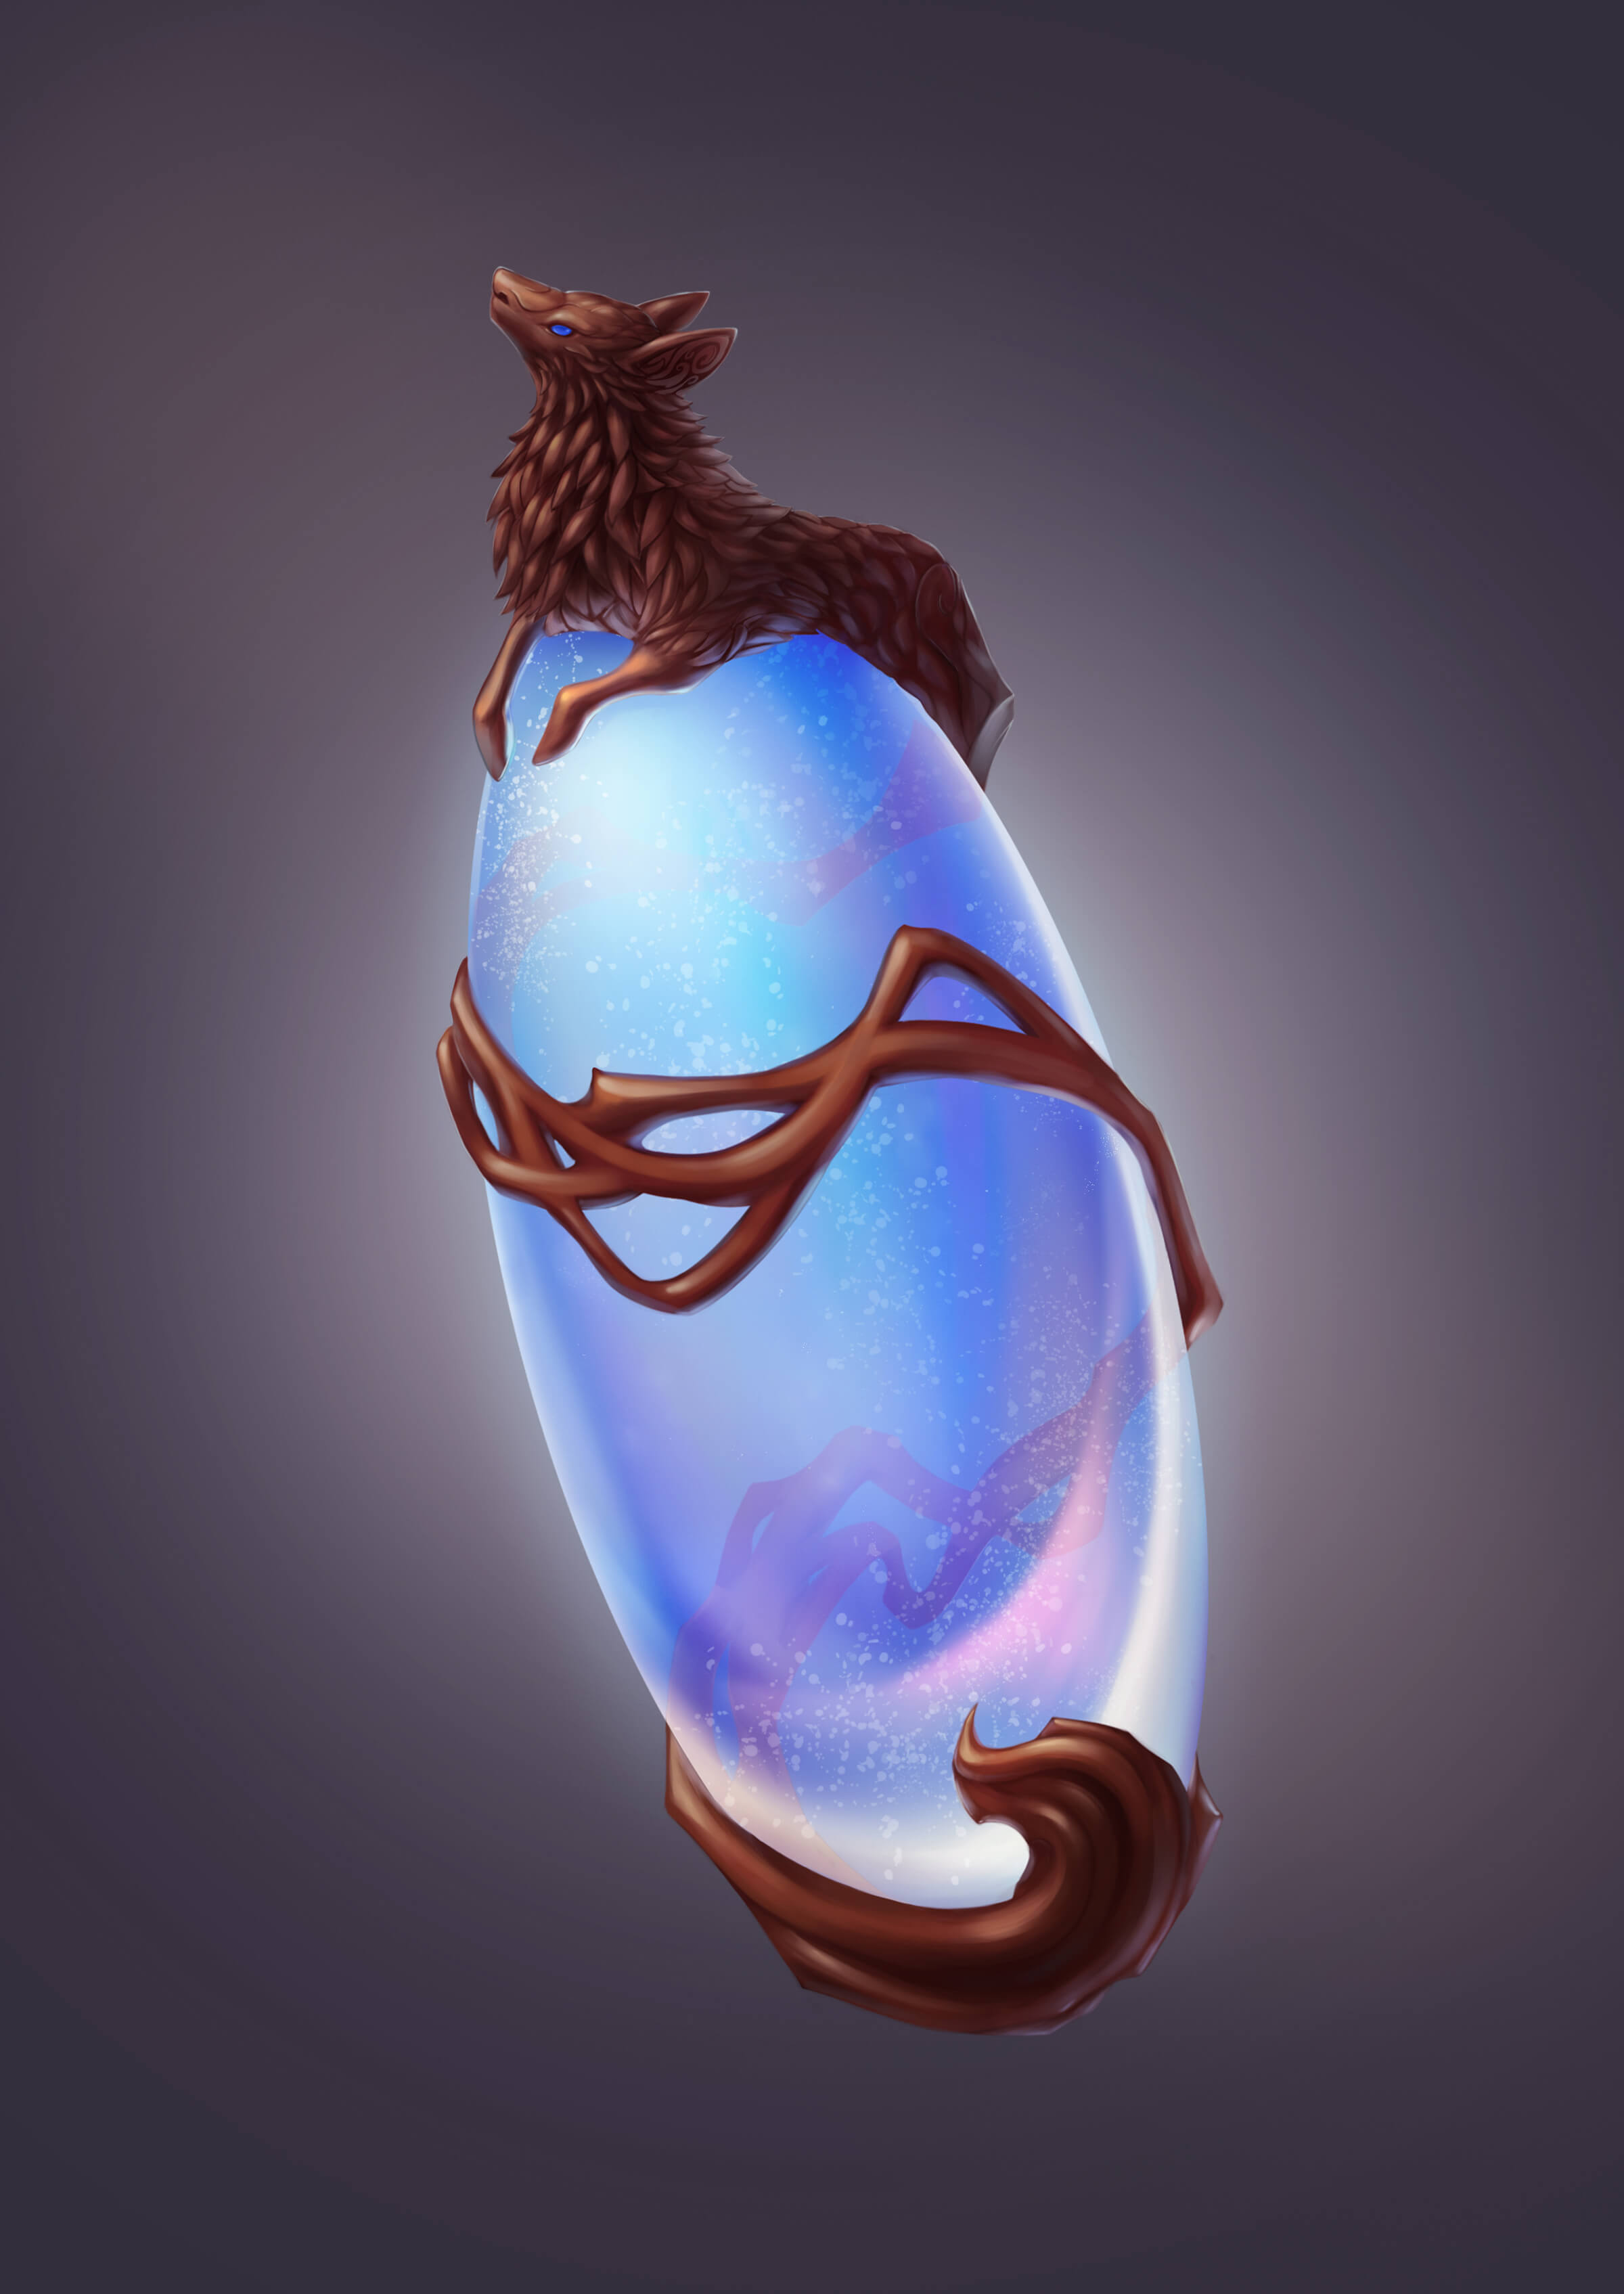 A translucent blue, egg-shaped gem enveloped by a brown lamb-like figure elongated to wrap around the gem's entirety.